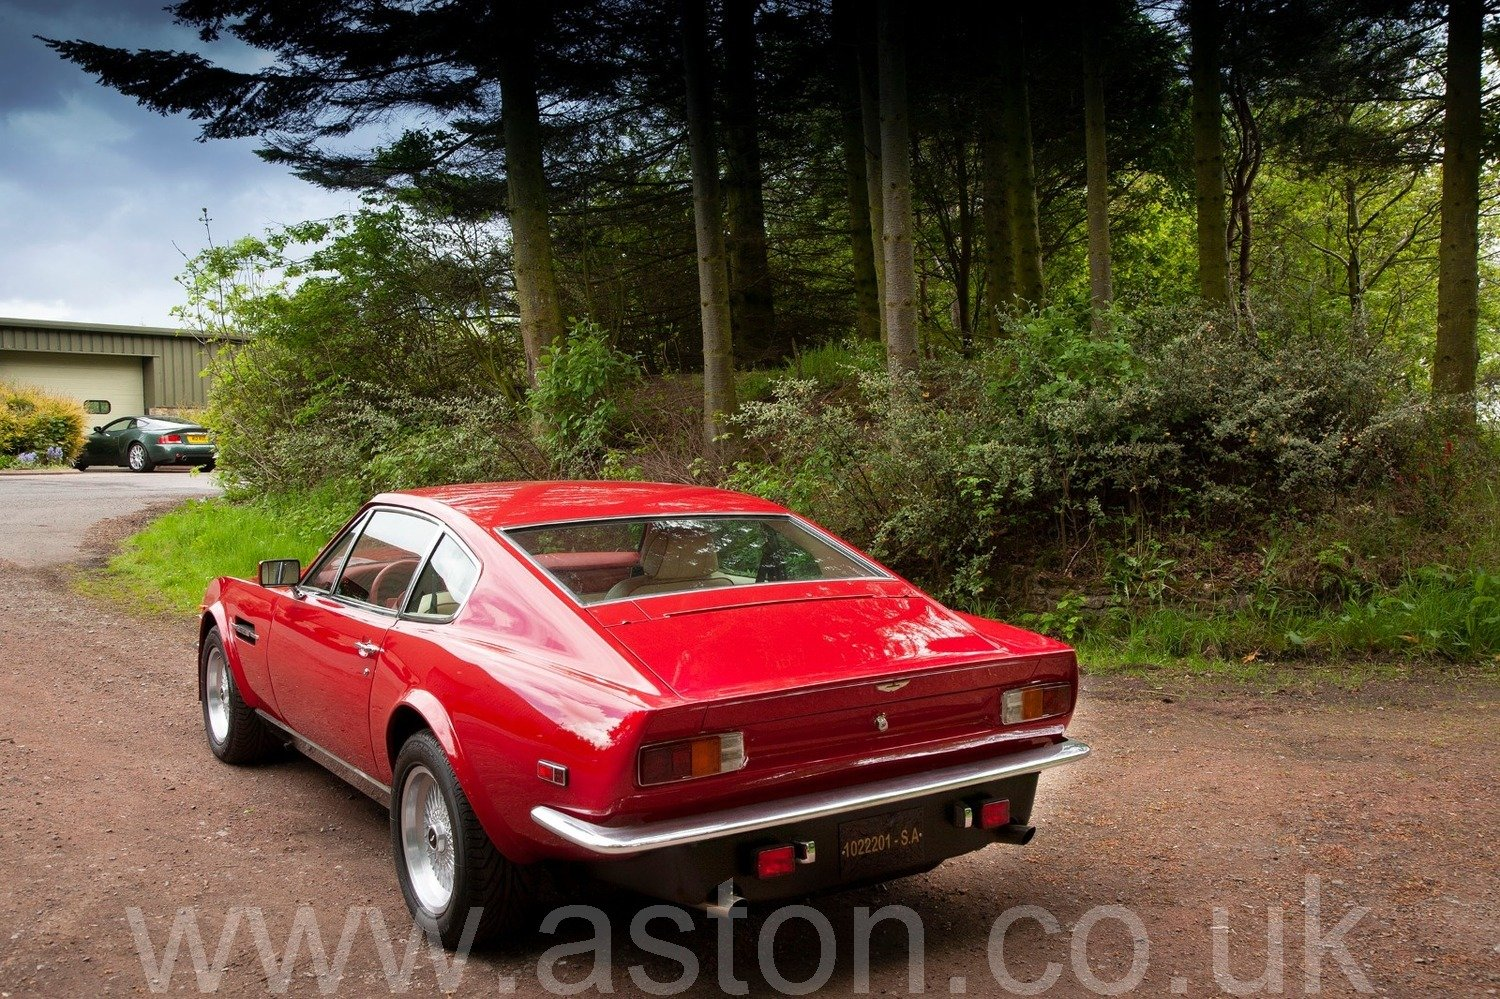 One Owner 1980 Aston Martin V8 Series IV 'Oscar India' to X For Sale